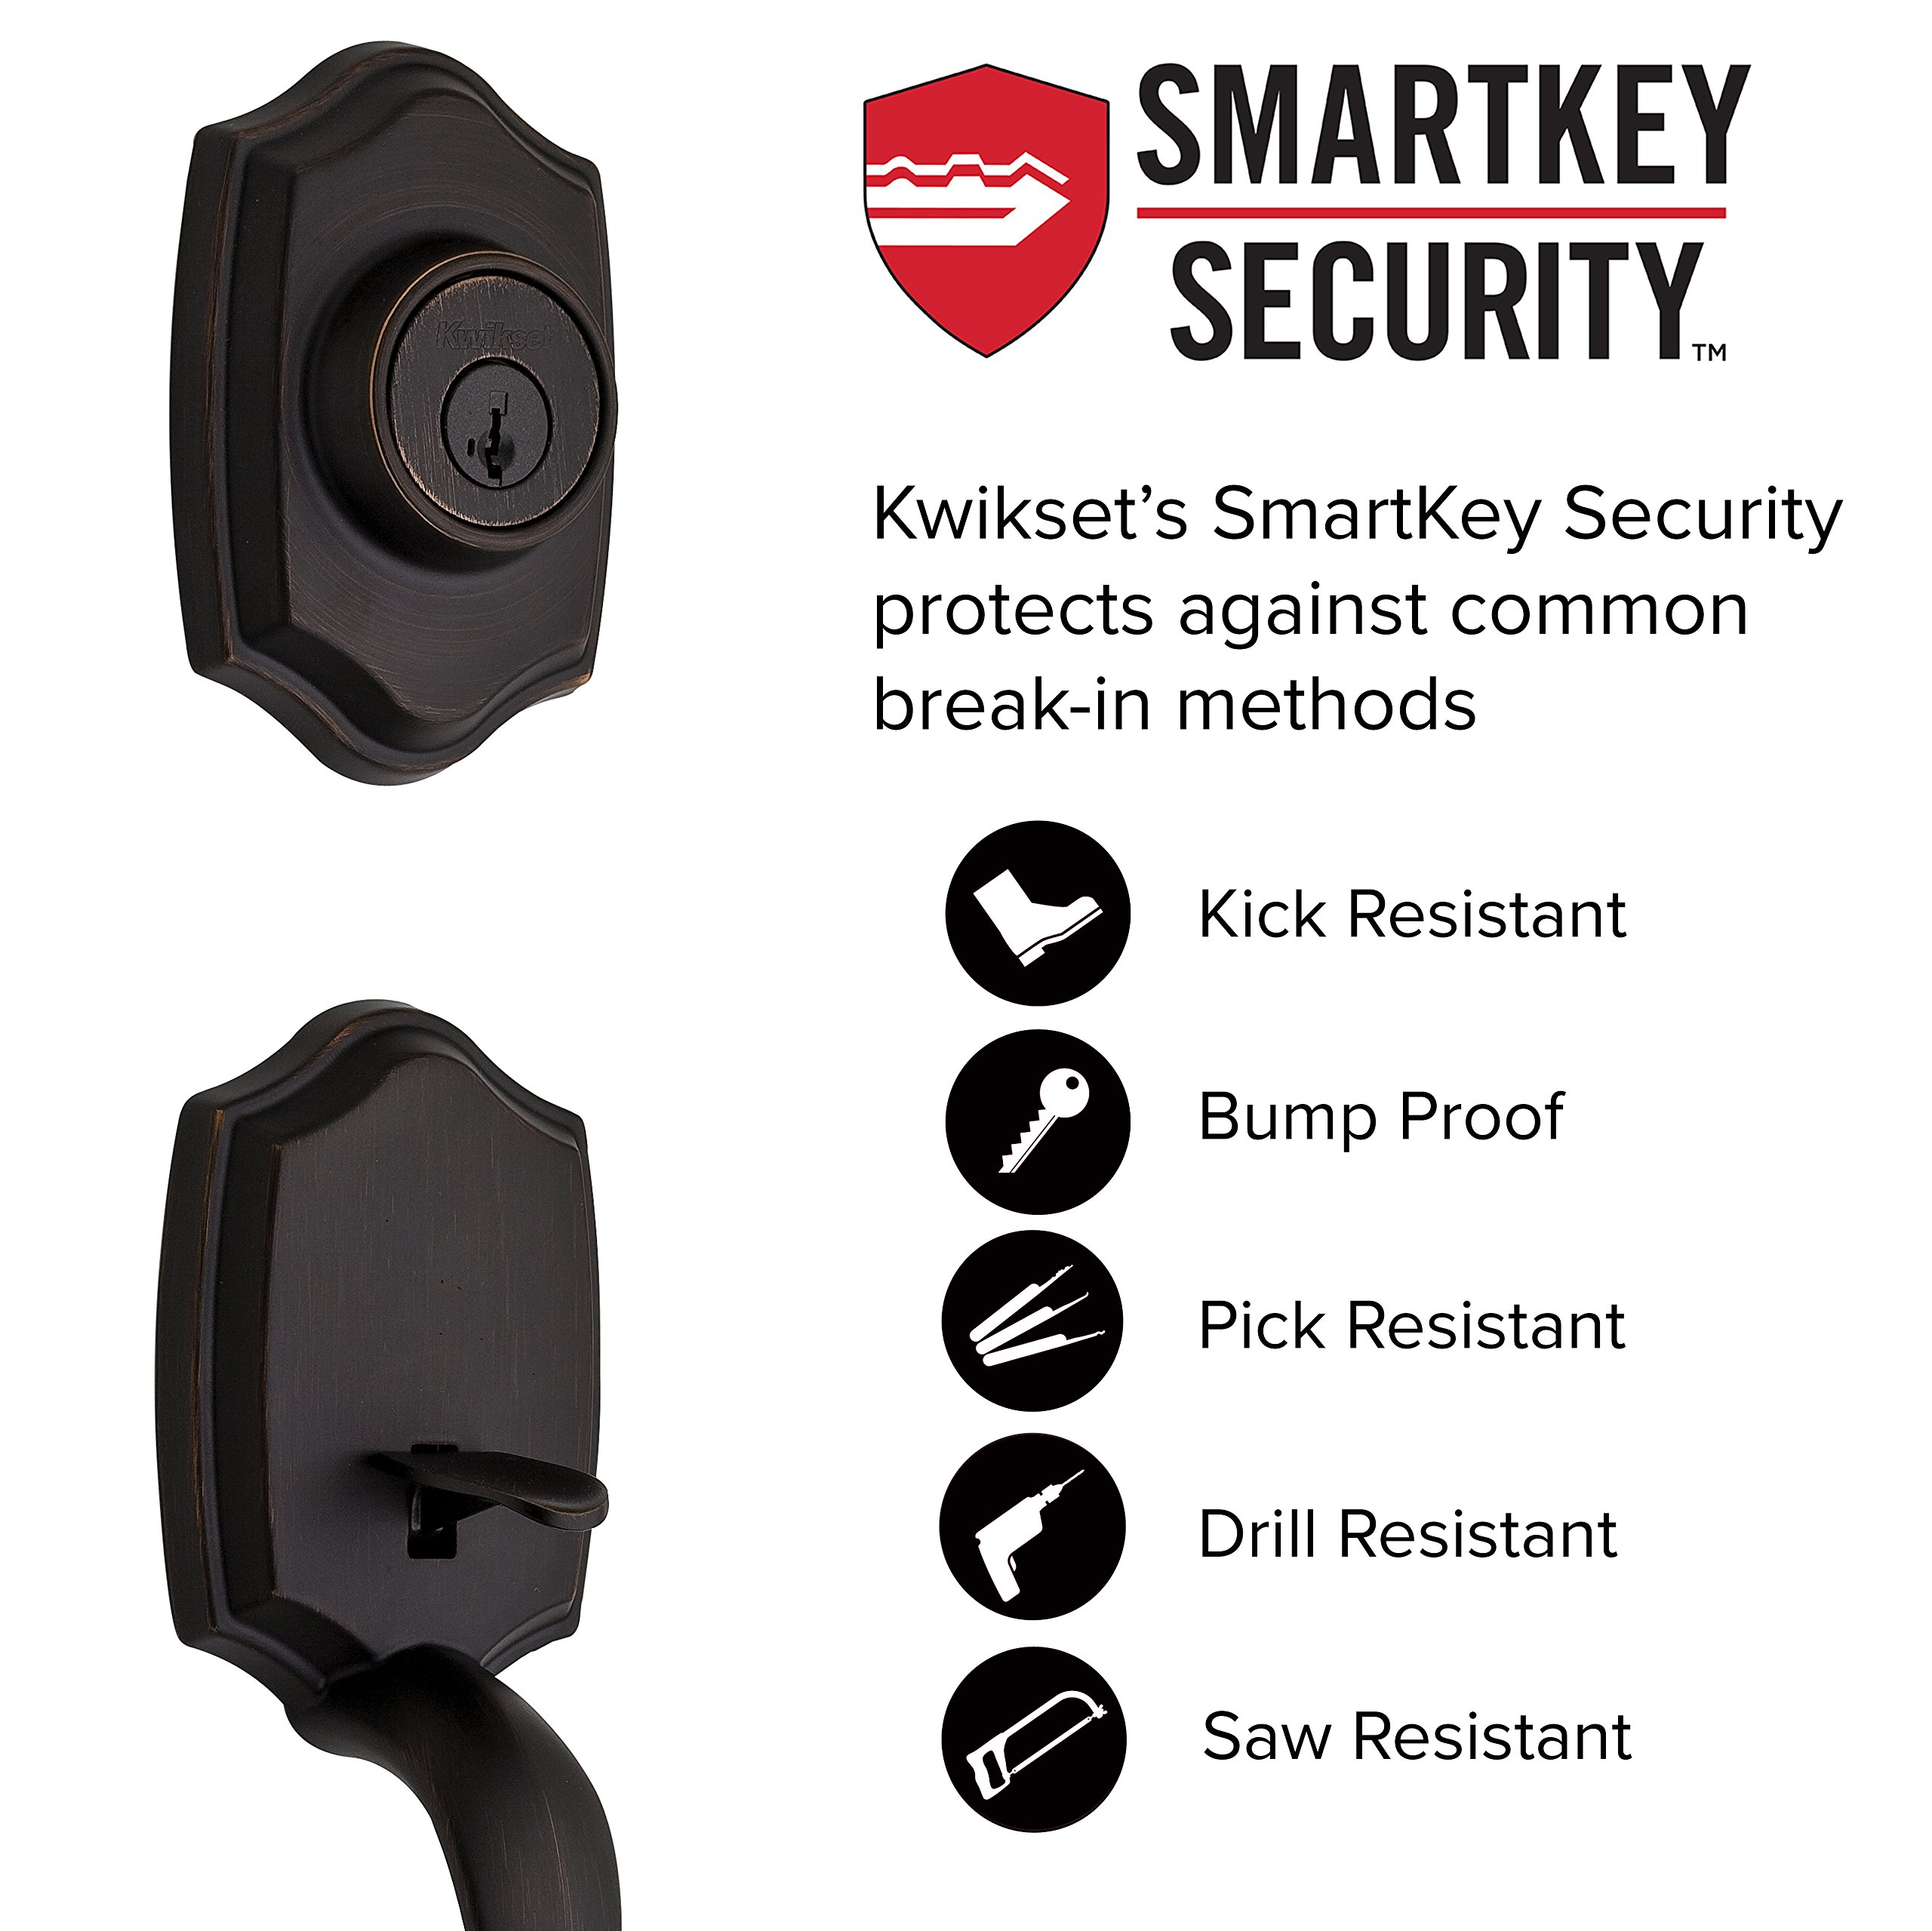 Kwikset 96870-100 Belleview Single Cylinder Handleset with Cove Knob featuring SmartKey Security in Venetian Bronze